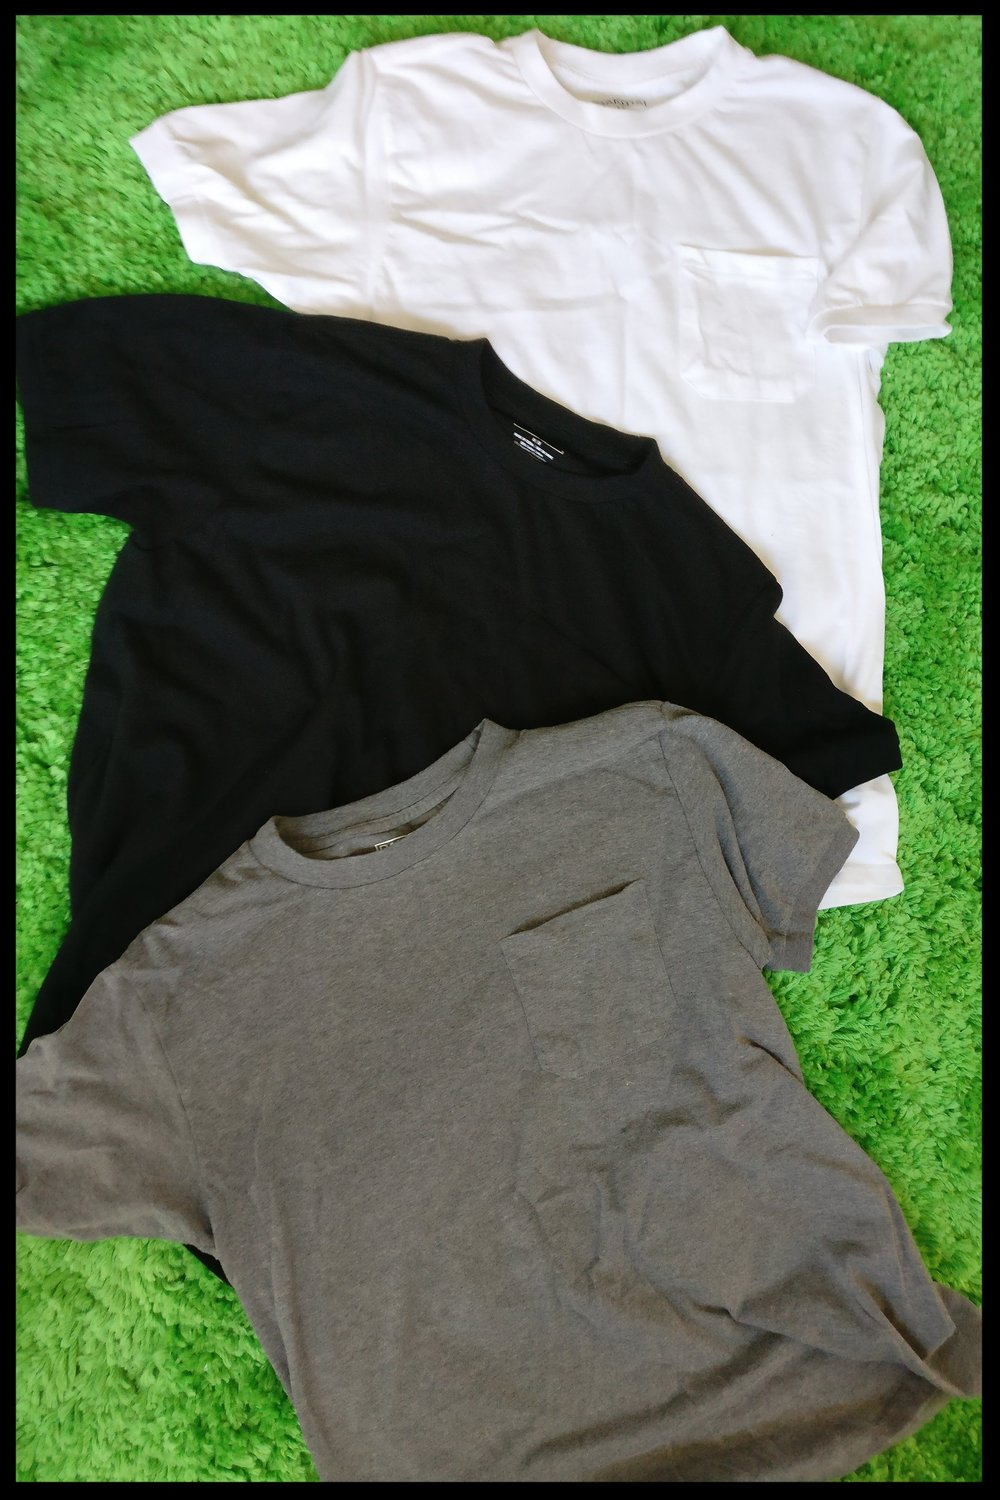 White, Black and Grey t-shirts. My daily drivers in LATAM. Also got 'em in blue, green and brown.